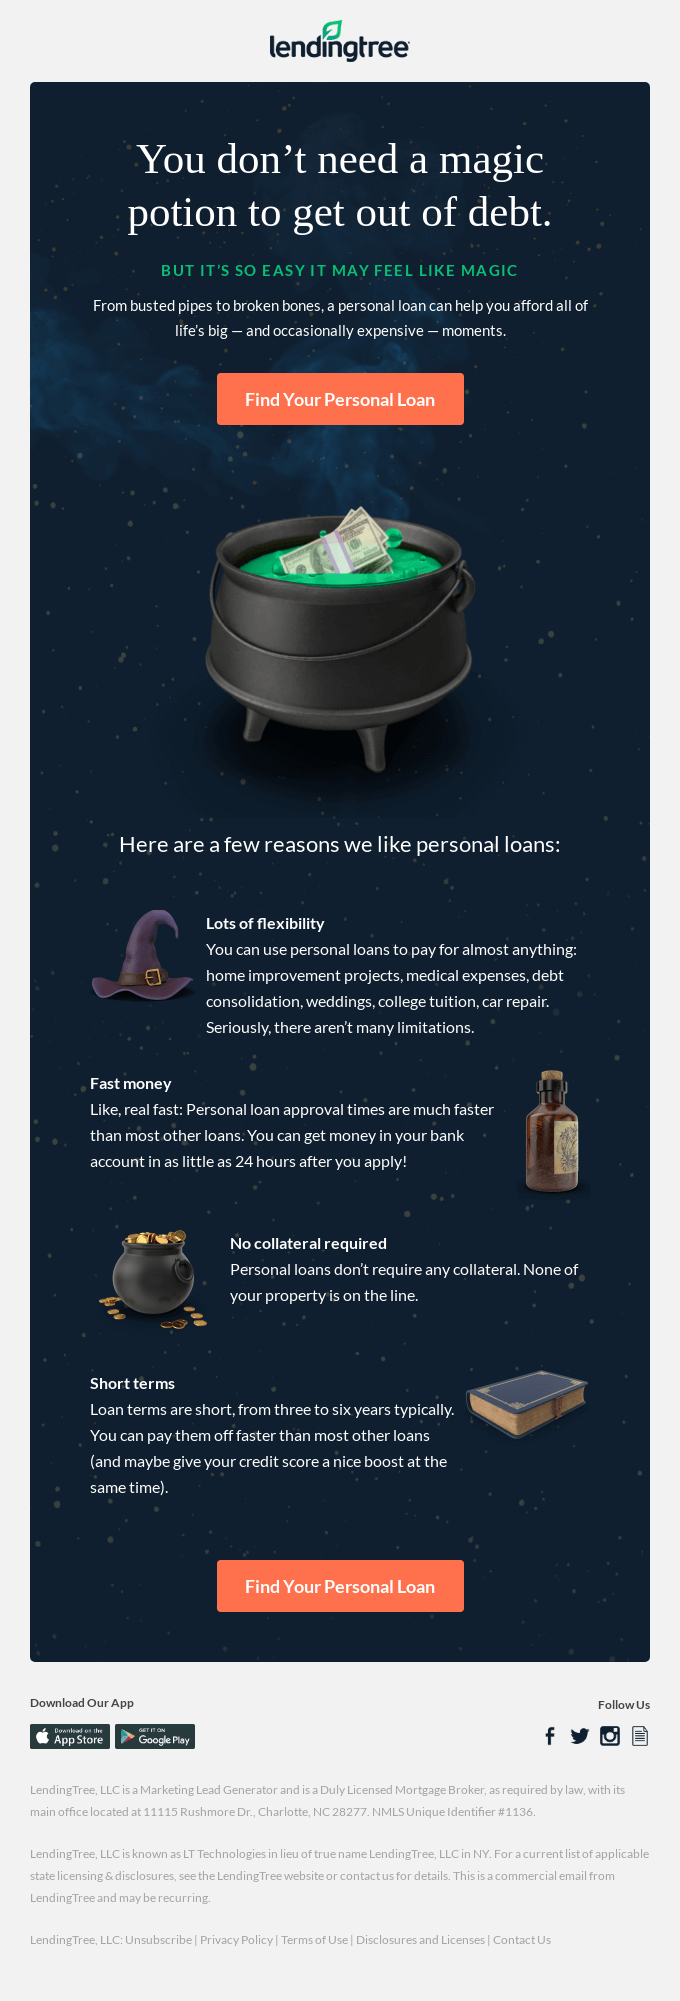 Halloween email offer from Lendingtree.